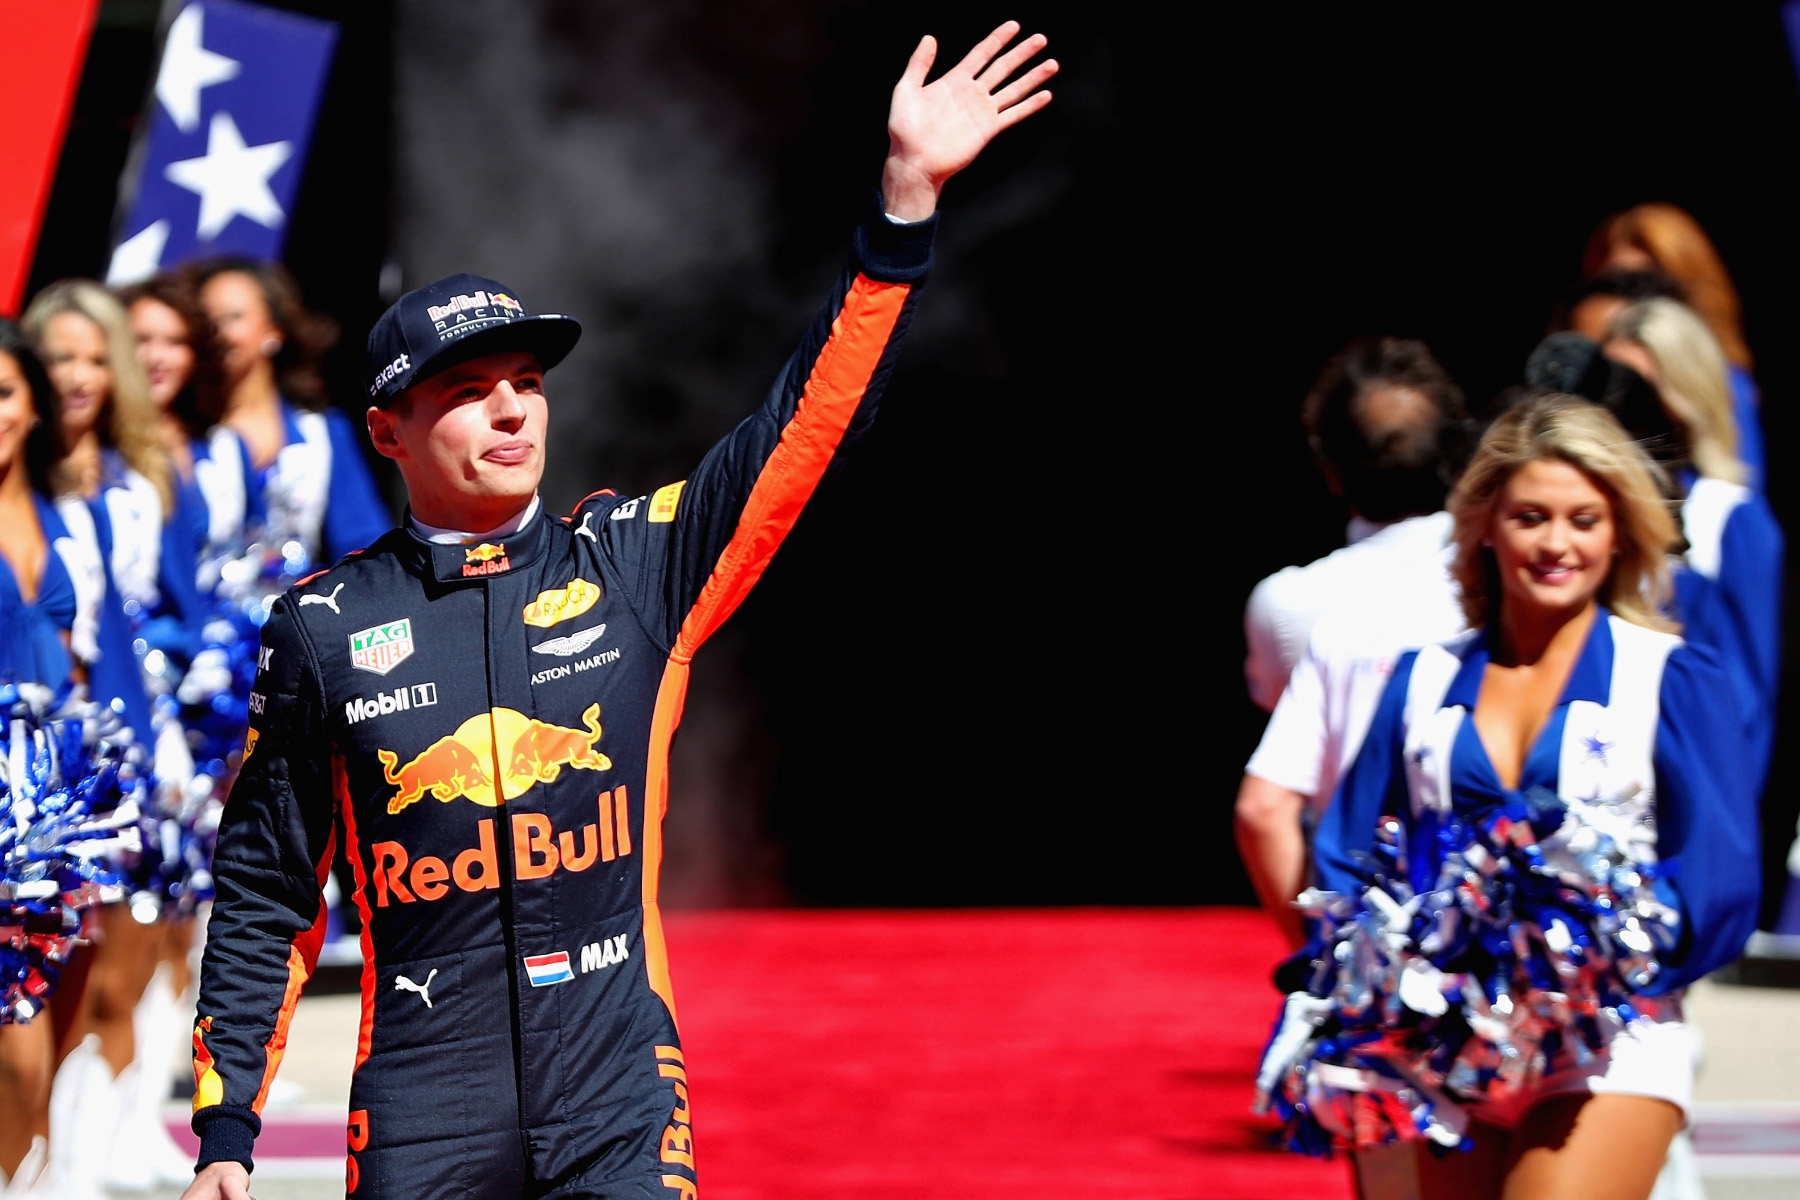 Max Verstappen is introduced to the Austin crowd at the 2017 United States Grand Prix.